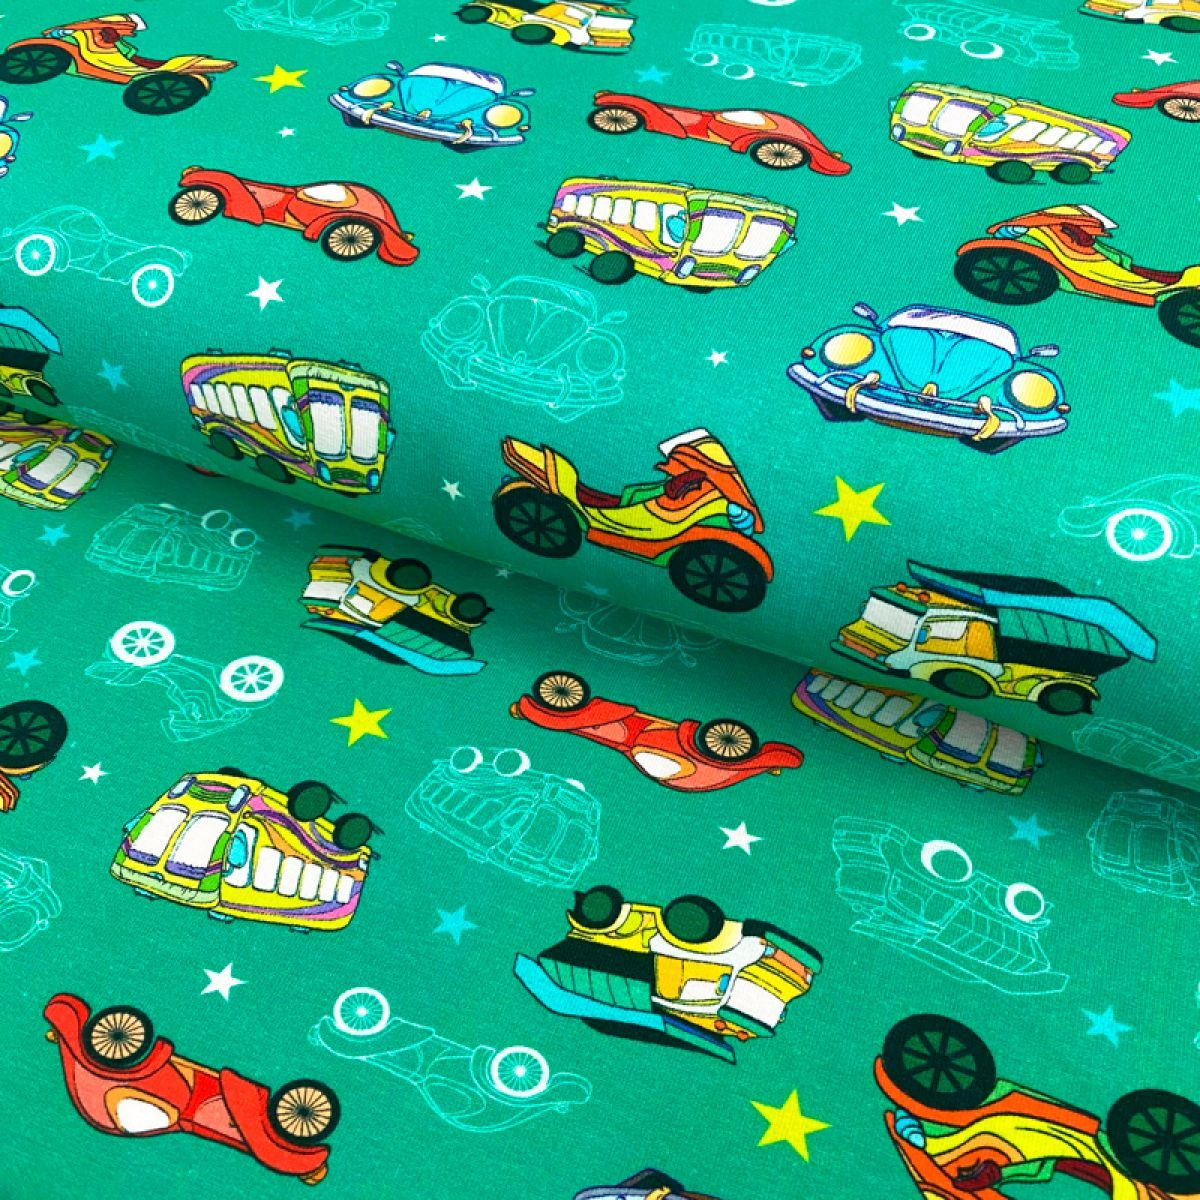 Úplet Toy cars digital print